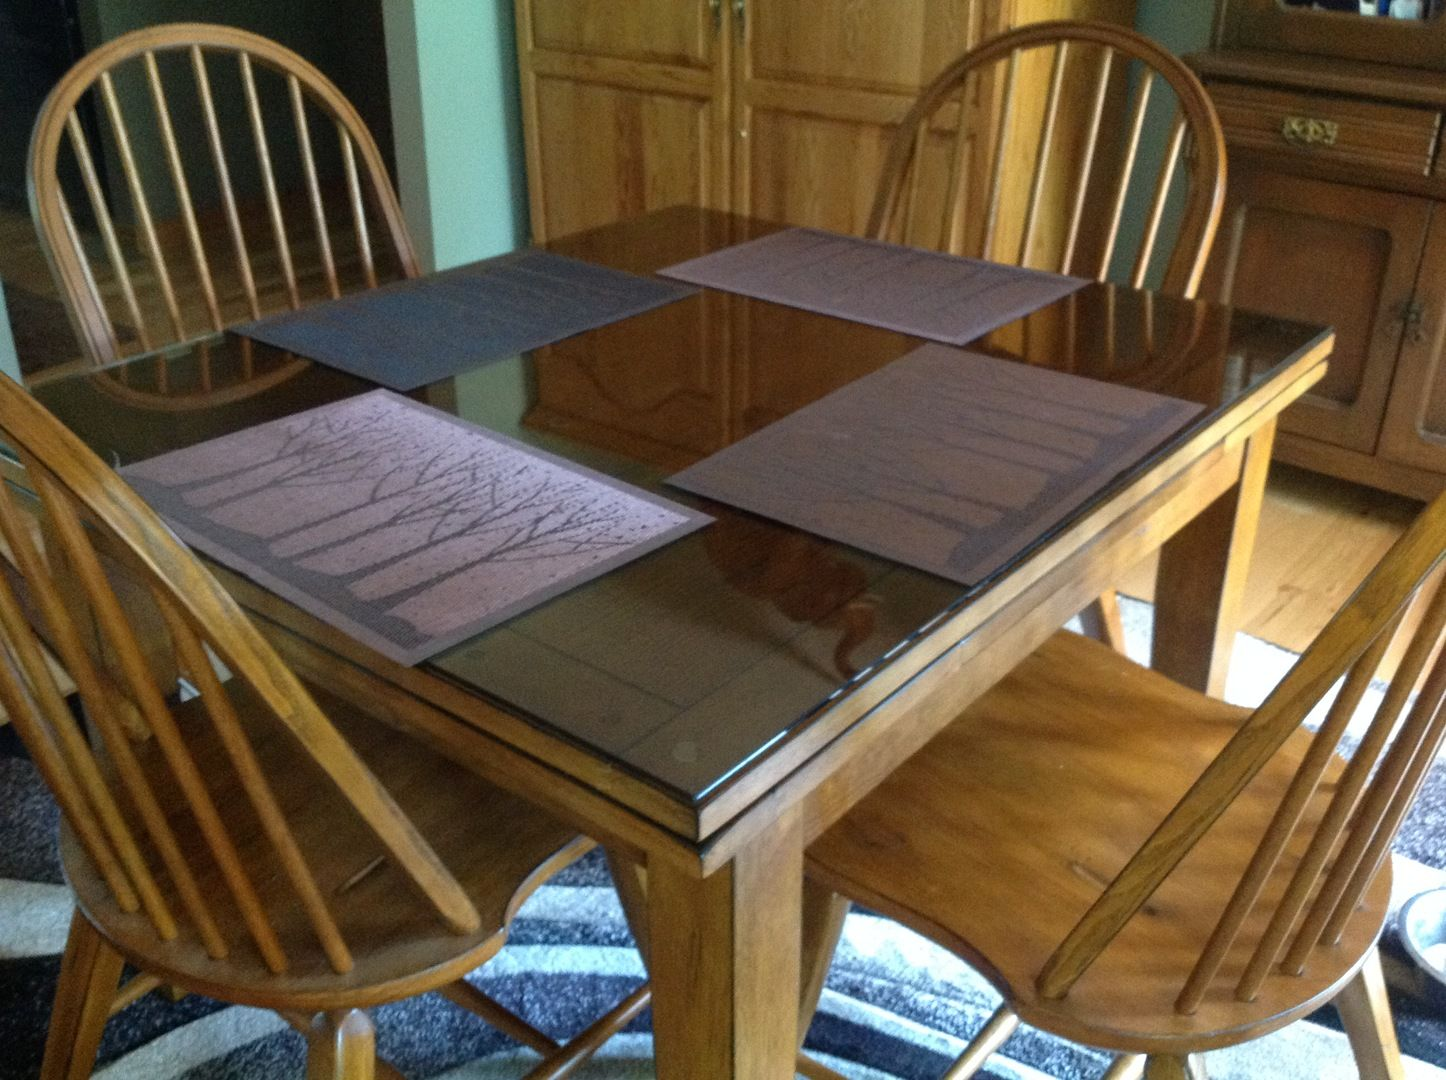 19 13 16 X 19 3 4 Custom Glass Table Top Bronze Real Review